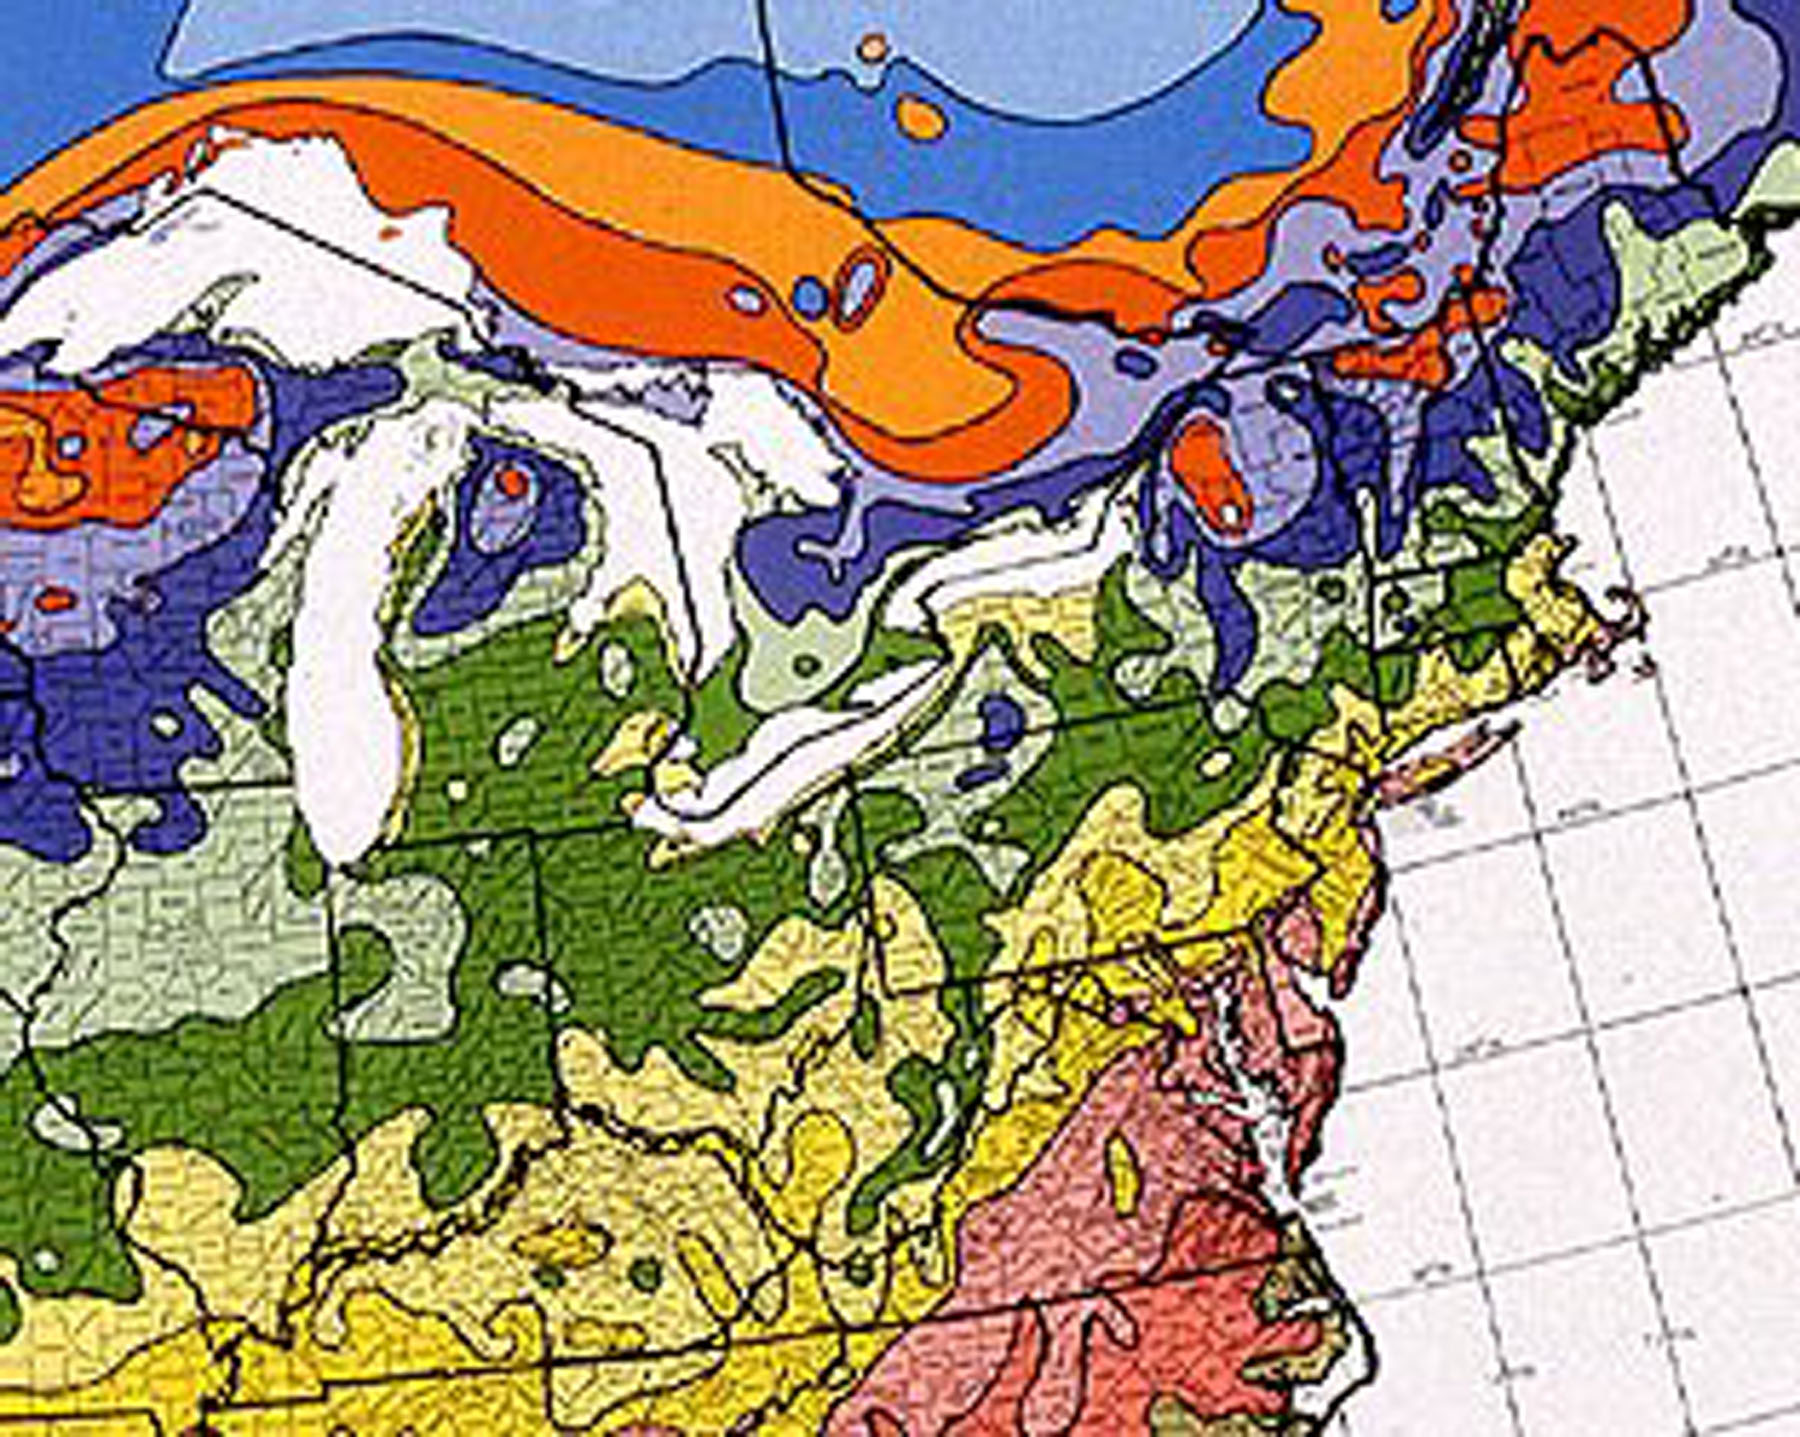 North East United States Map Metro Northeast Giant Sequoias